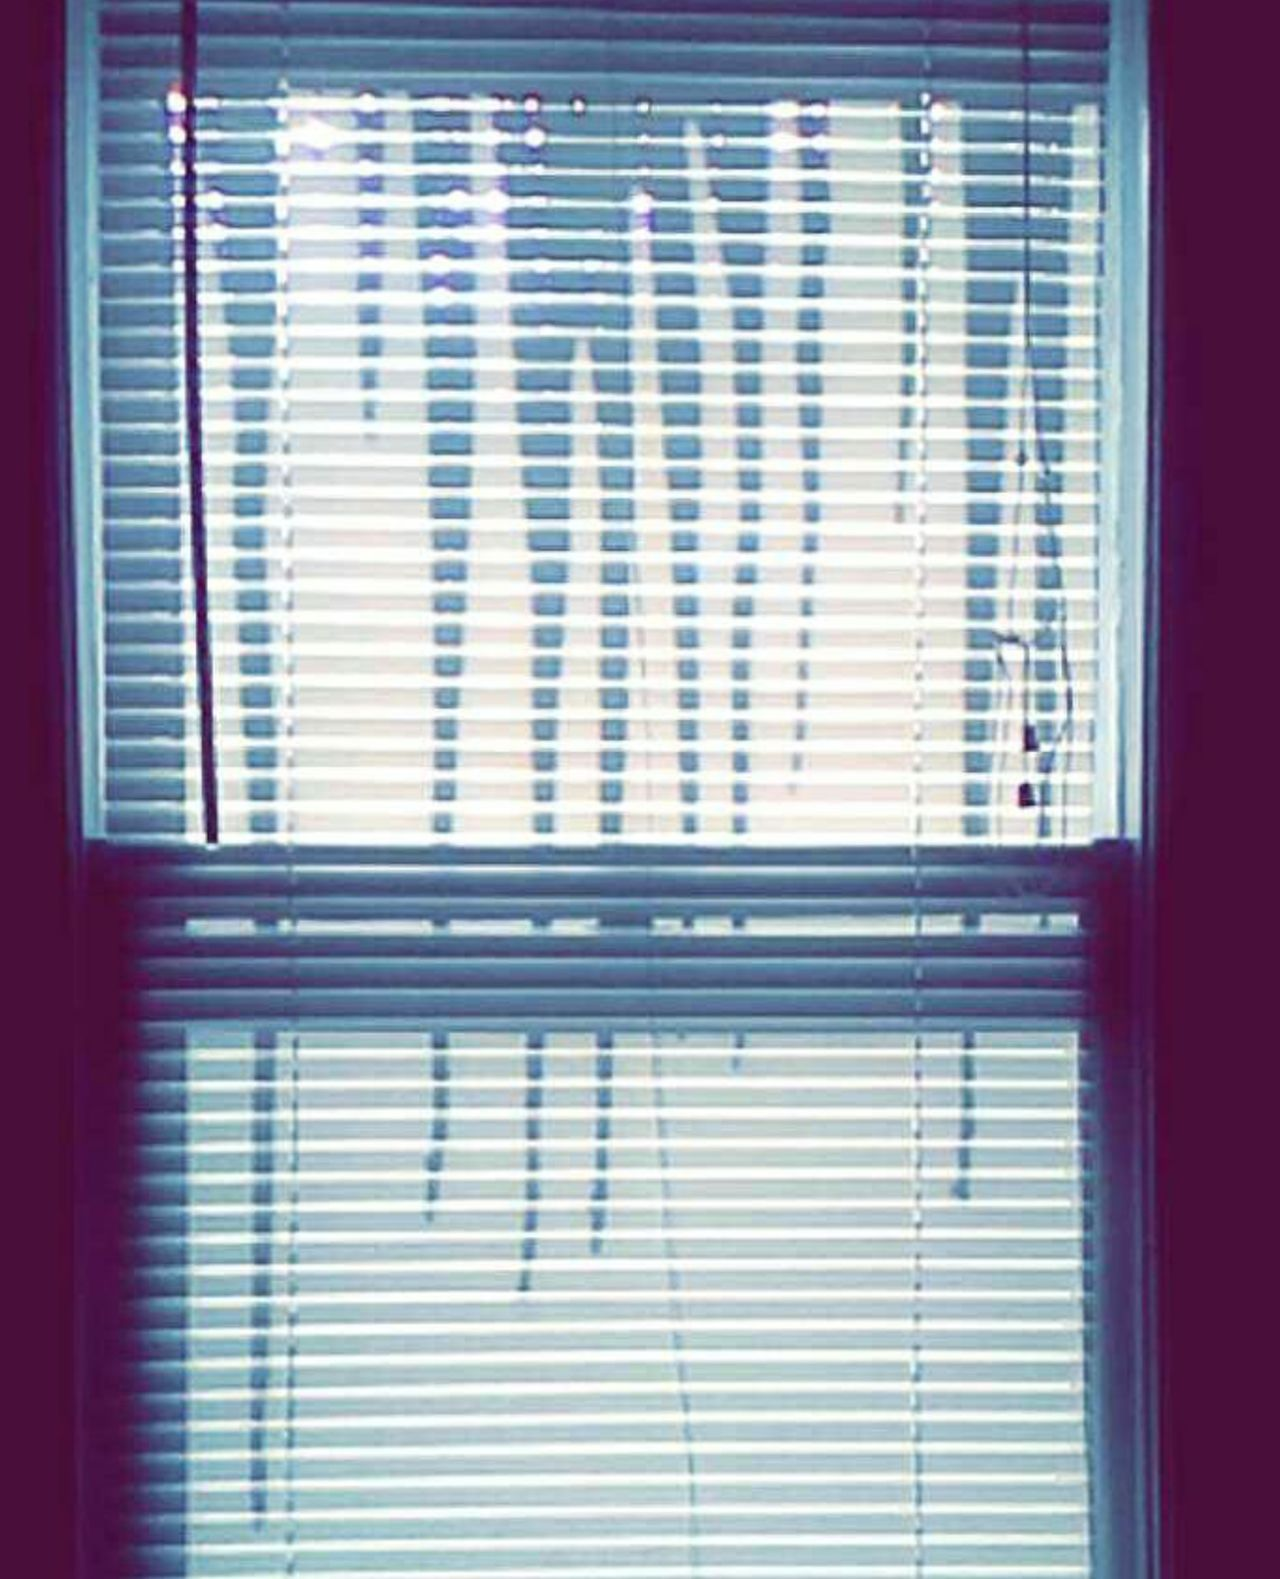 Window Curtain Blinds Pattern No People Day Indoors  Architecture Icicles Shawdows Silhouettes